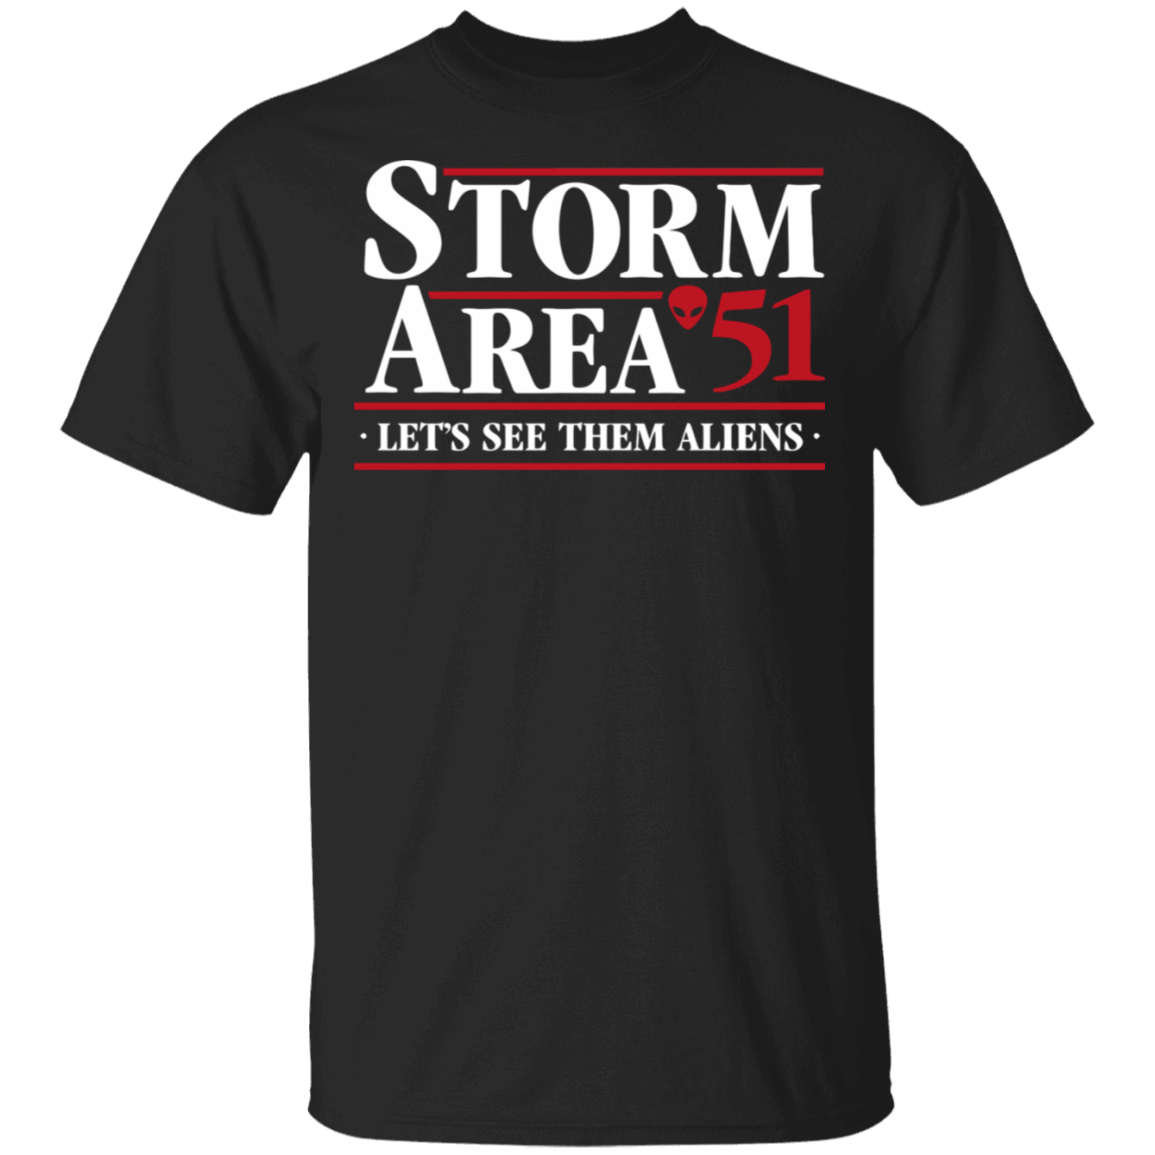 Storm Area 51 - Let's See Them Aliens - September 20 T-Shirts, Hoodies, Tank 22-113-79271383-252 - Tee Ript